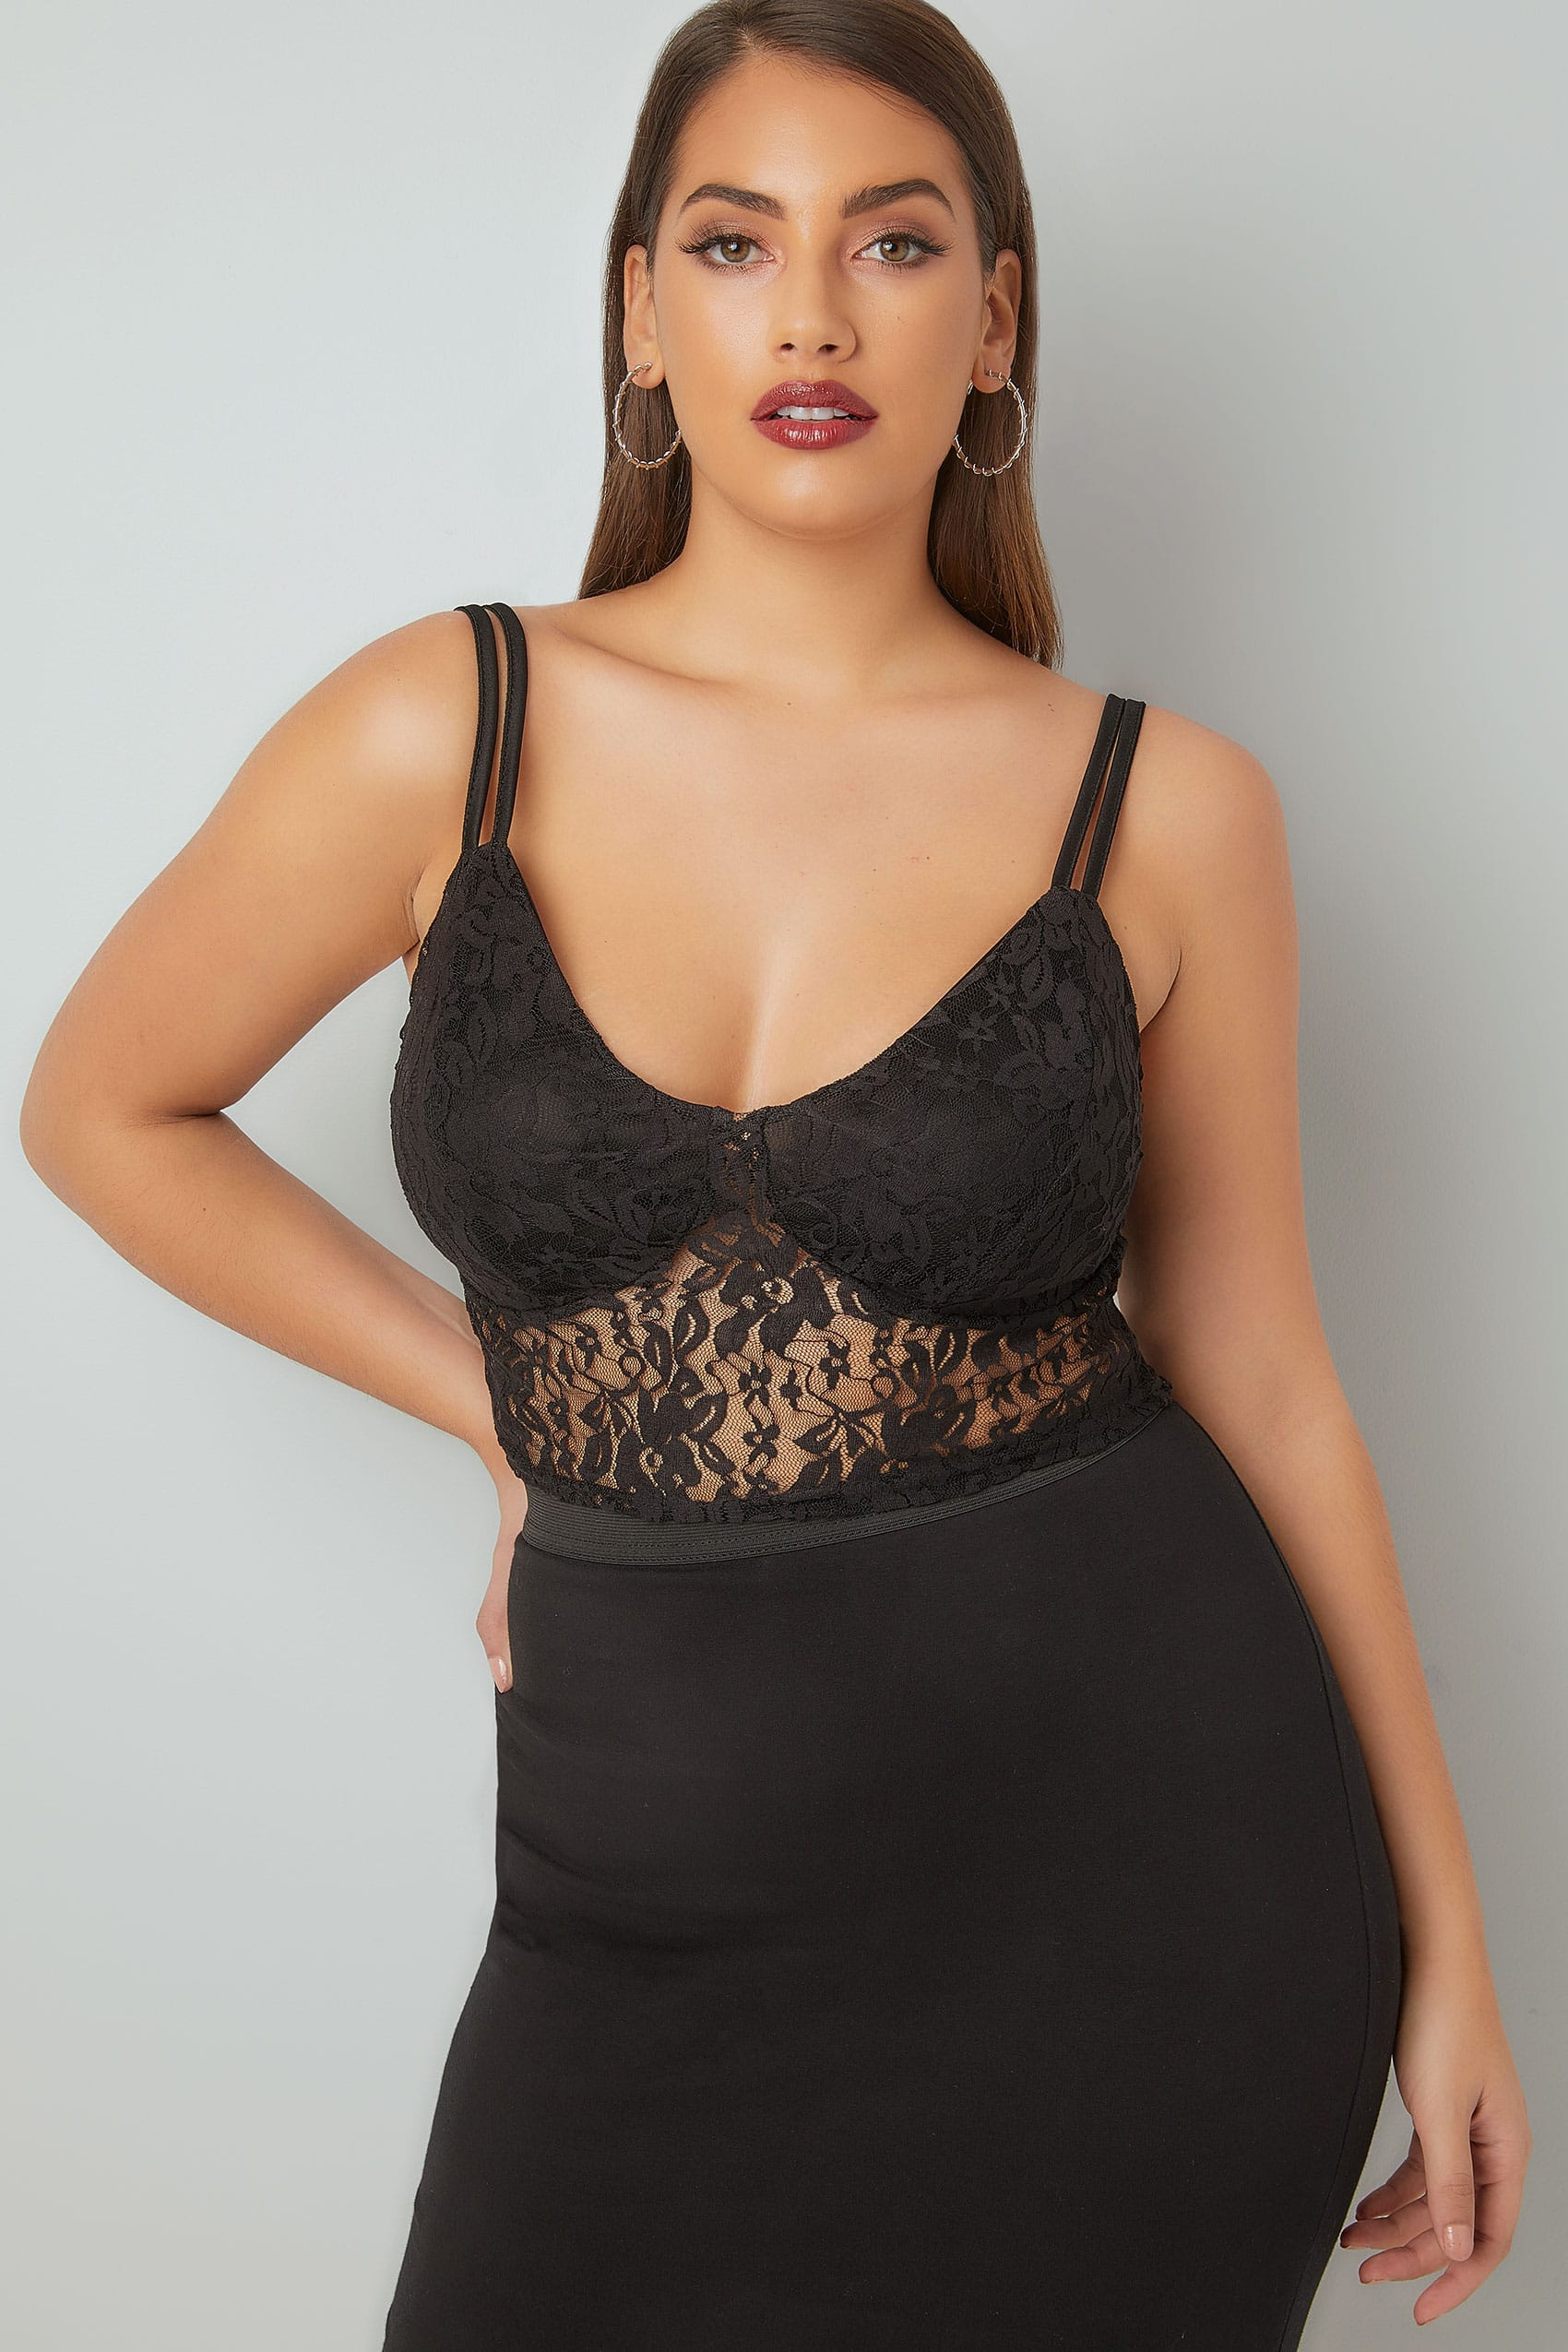 LIMITED COLLECTION Black Lace Bralette, Plus size 16 to 32